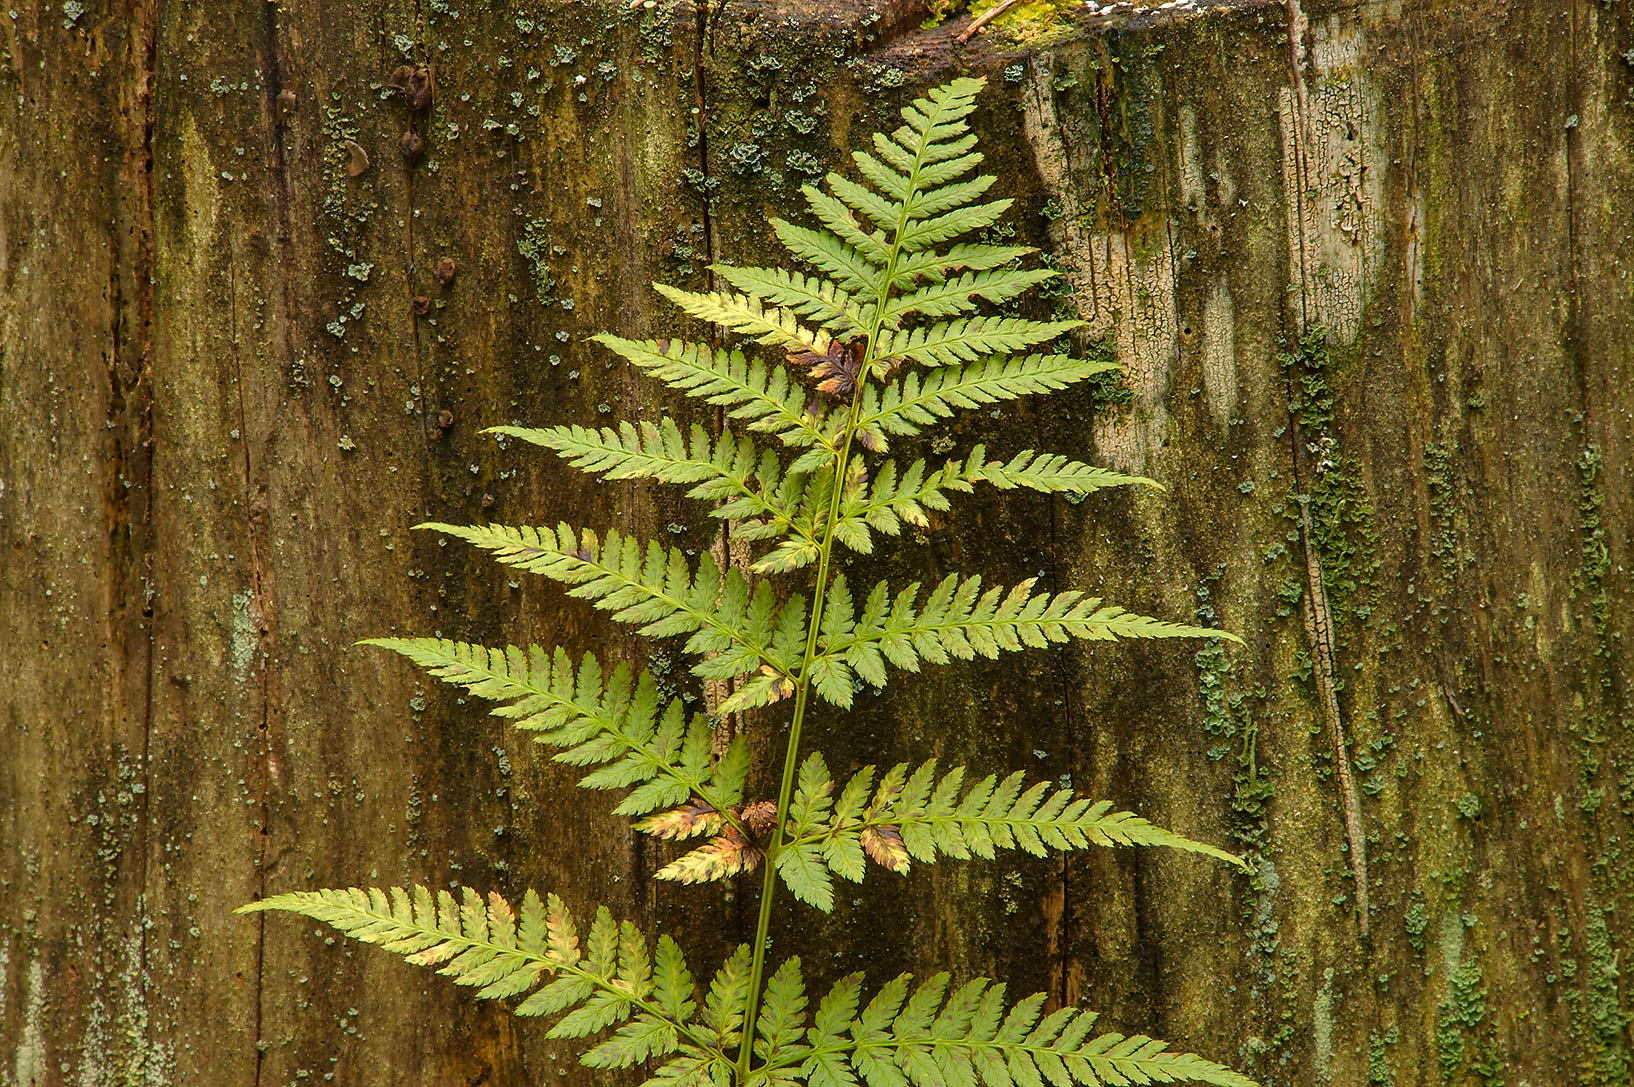 Fern leaf in Petiayarvi, 50 miles north from St.Petersburg. Russia